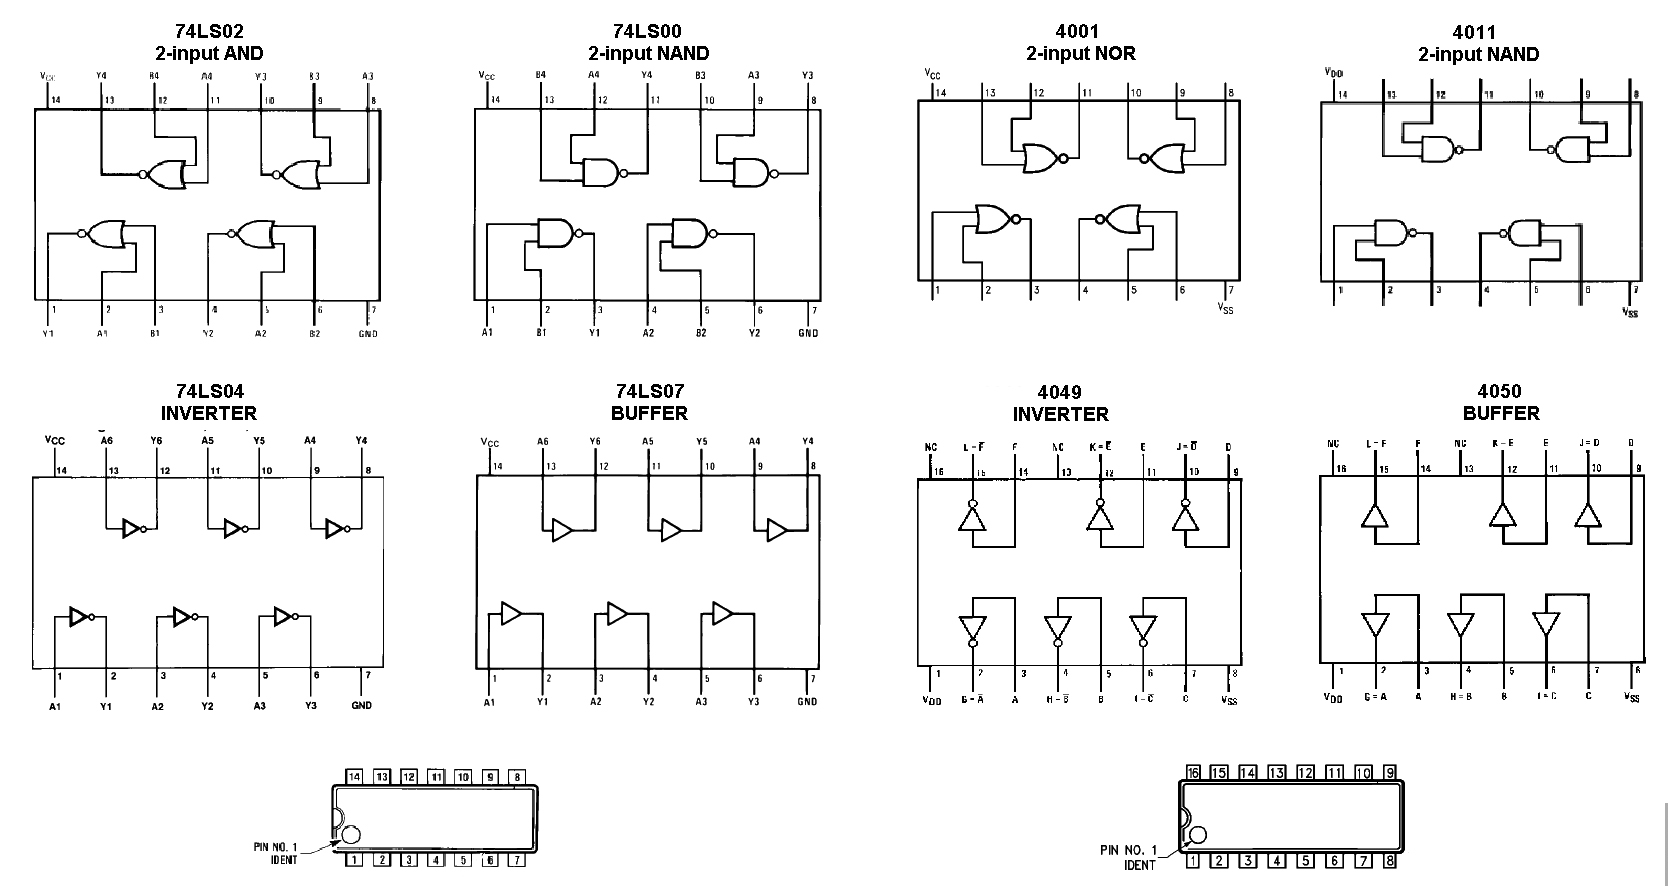 small logic gates \u2014 the building blocks of versatile digitalElectronic Circuit And Logic Design #2